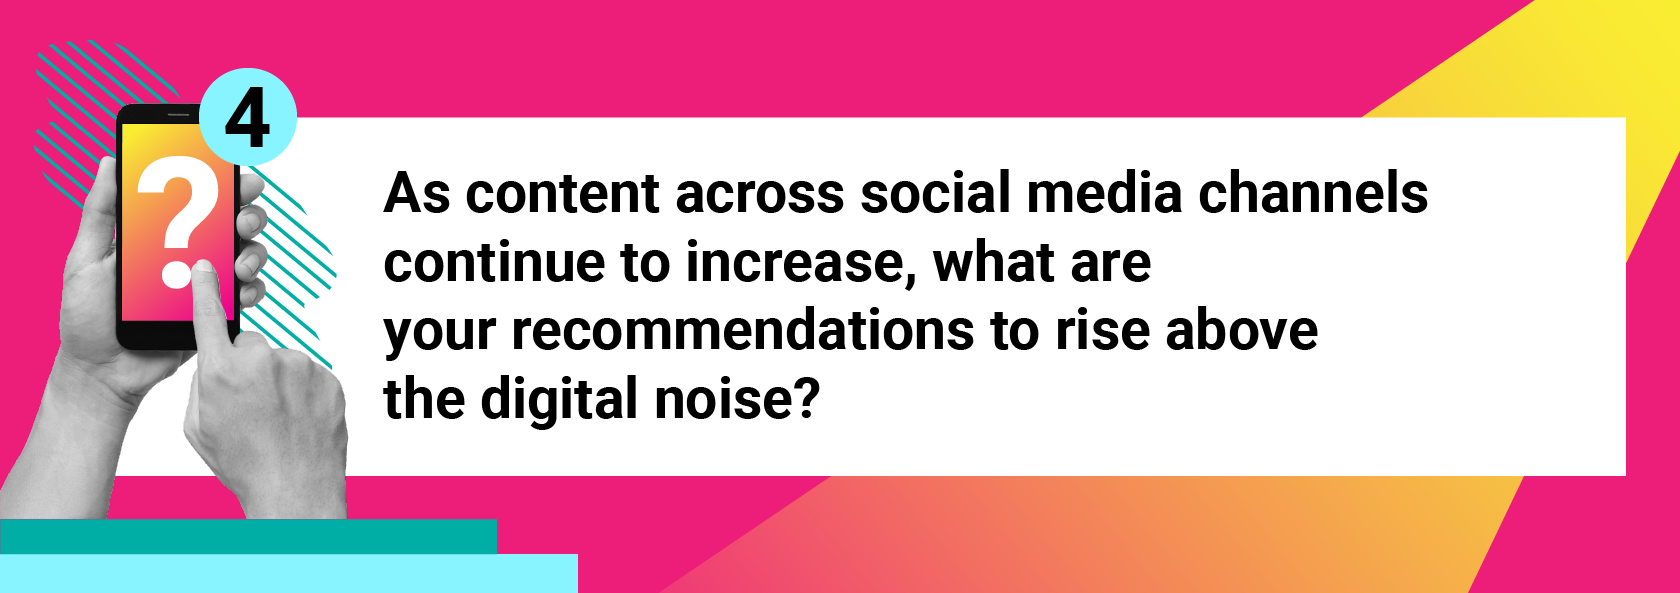 As content across social media channels continue to increase, what are your recommendations to rise above the digital noise?